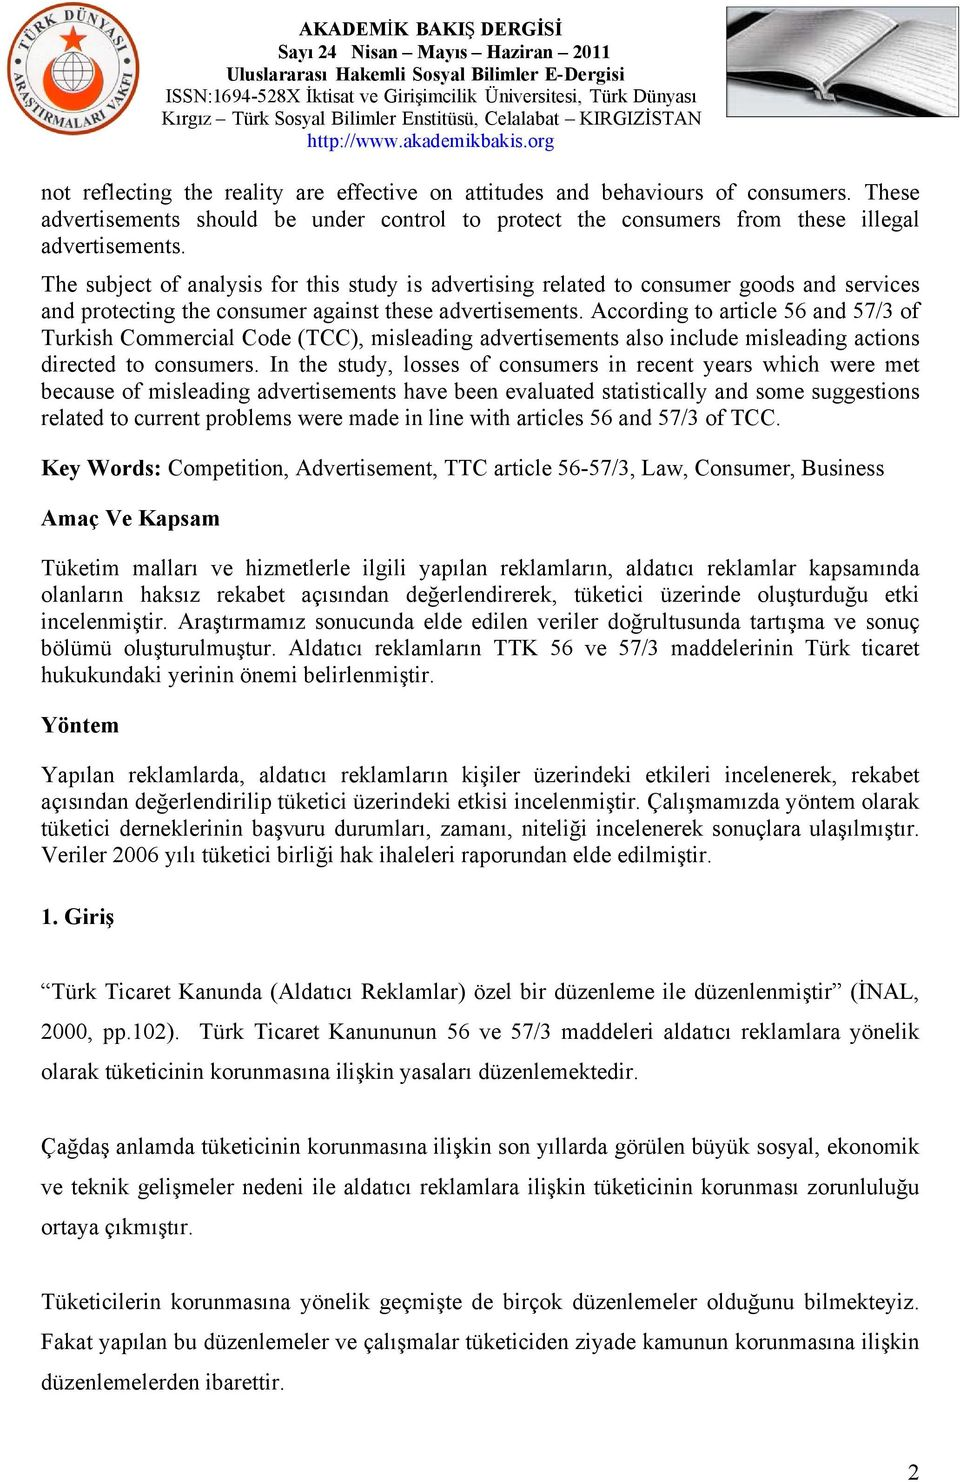 According to article 56 and 57/3 of Turkish Commercial Code (TCC), misleading advertisements also include misleading actions directed to consumers.